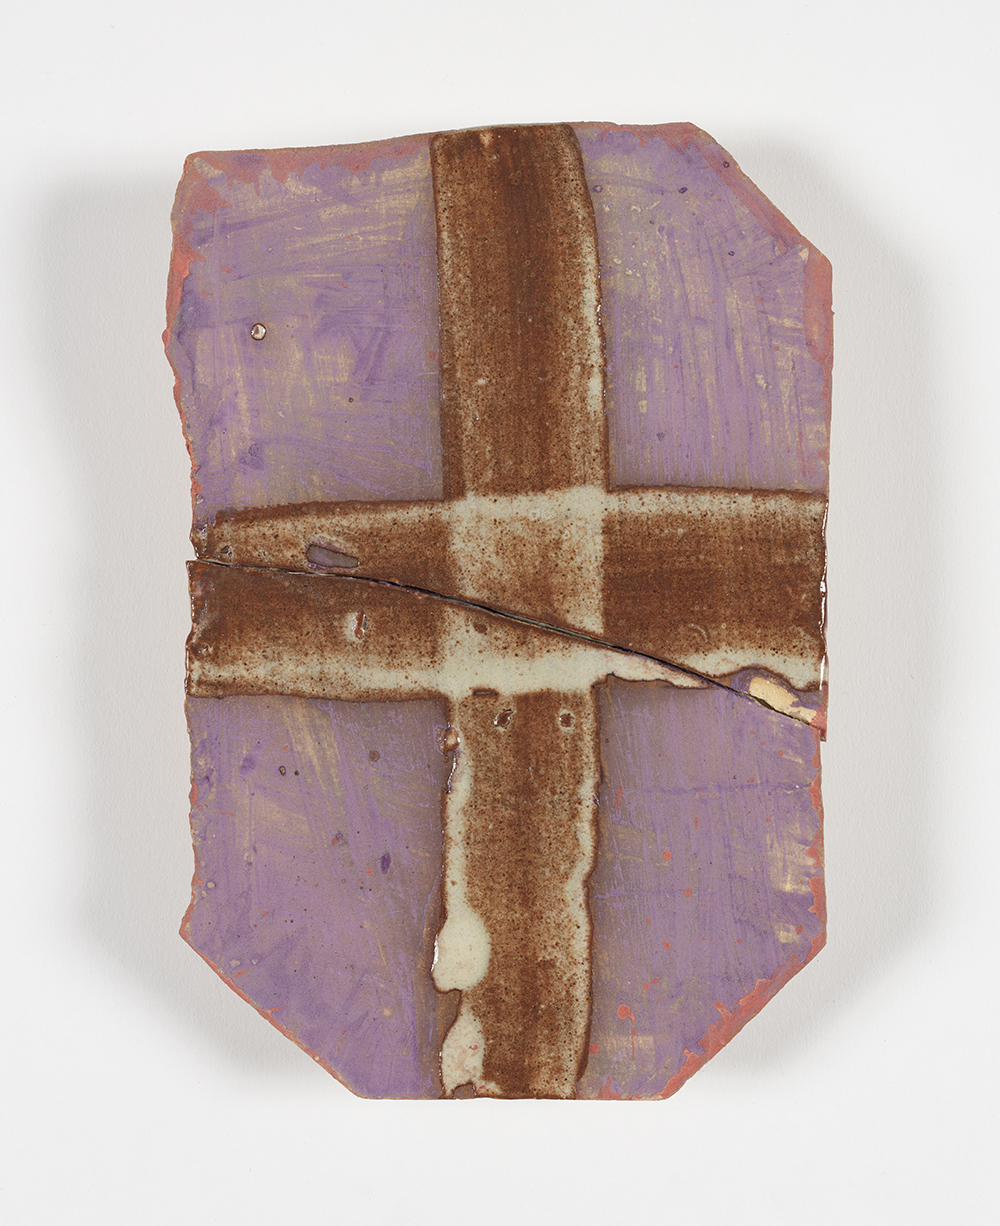 Kevin McNamee-Tweed.<em> Crux Re-crux</em>, 2018. Glazed ceramic, 7 3/4 x 5 1/4 inches (19.7 x 13.3 cm)